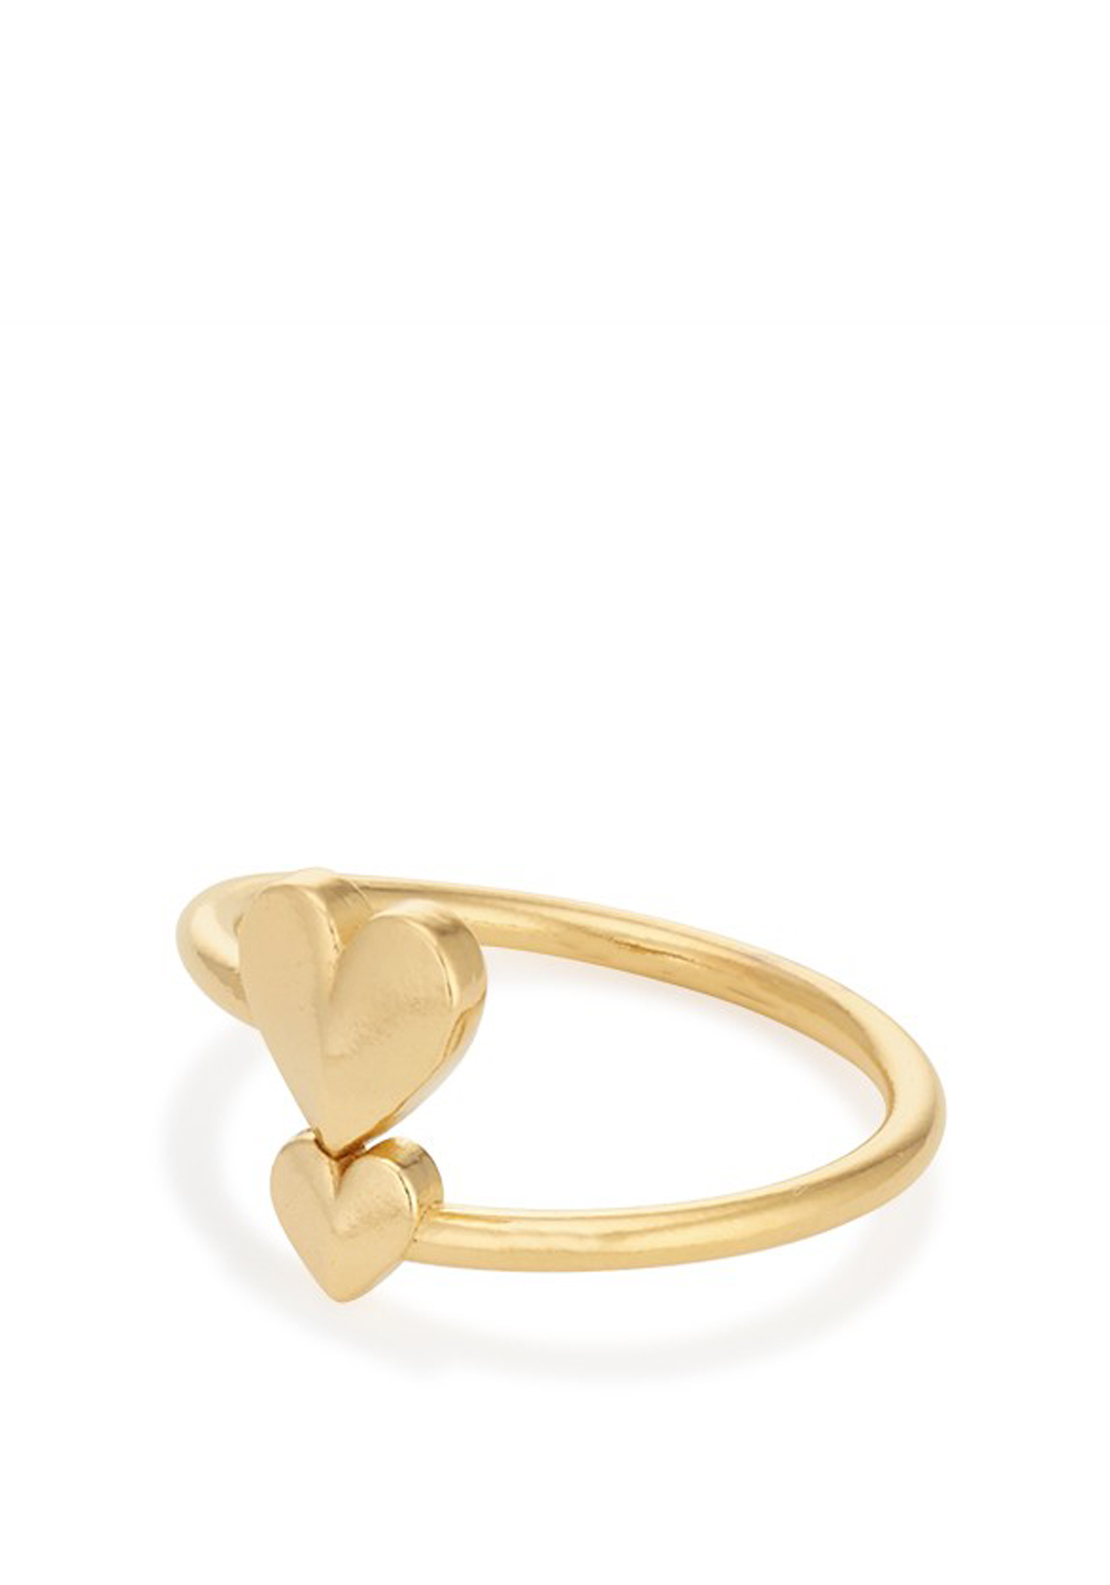 Alex and Ani Romance Heart Wrap Ring, Gold